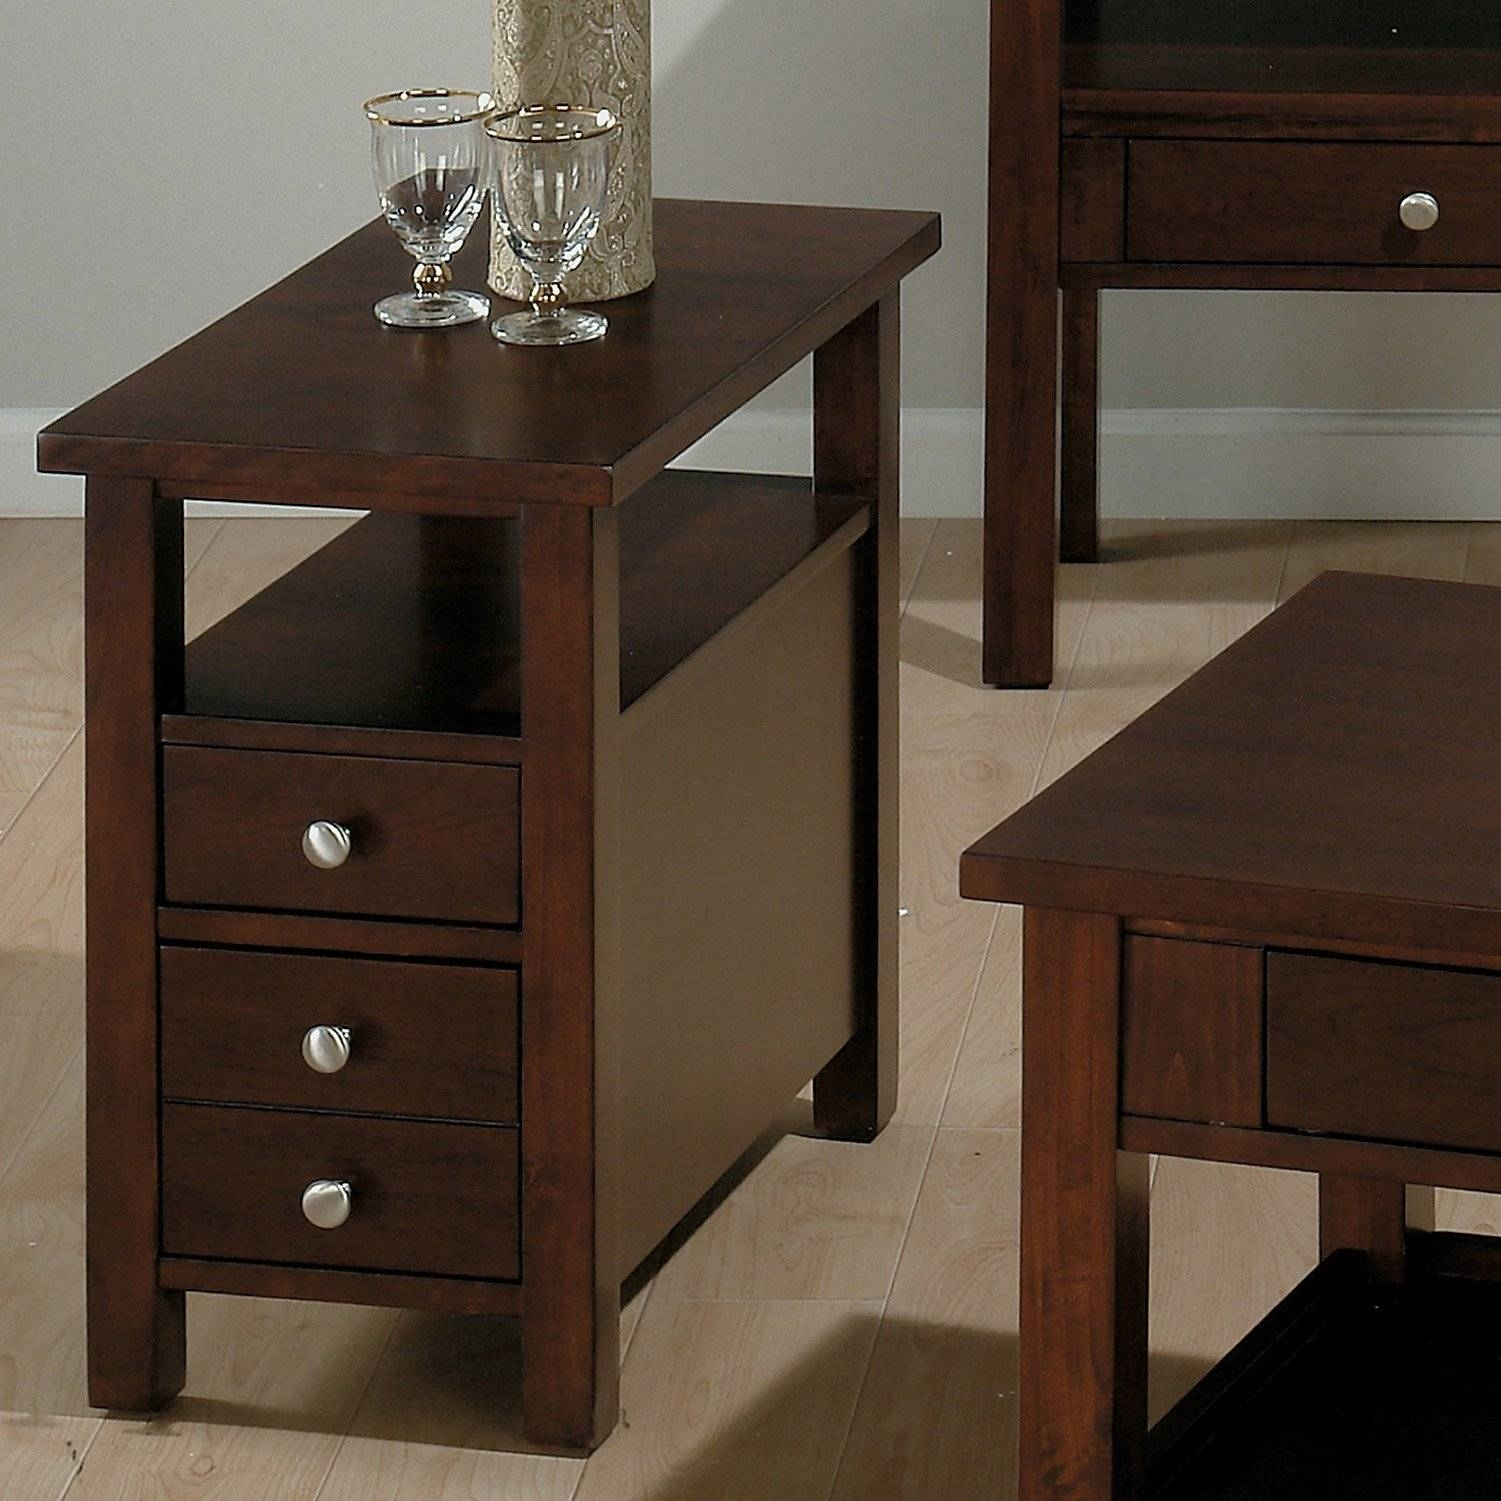 4 Tips In Choosing Round Coffee Tables With Storage - Interior for Round Coffee Tables With Drawers (Image 1 of 30)